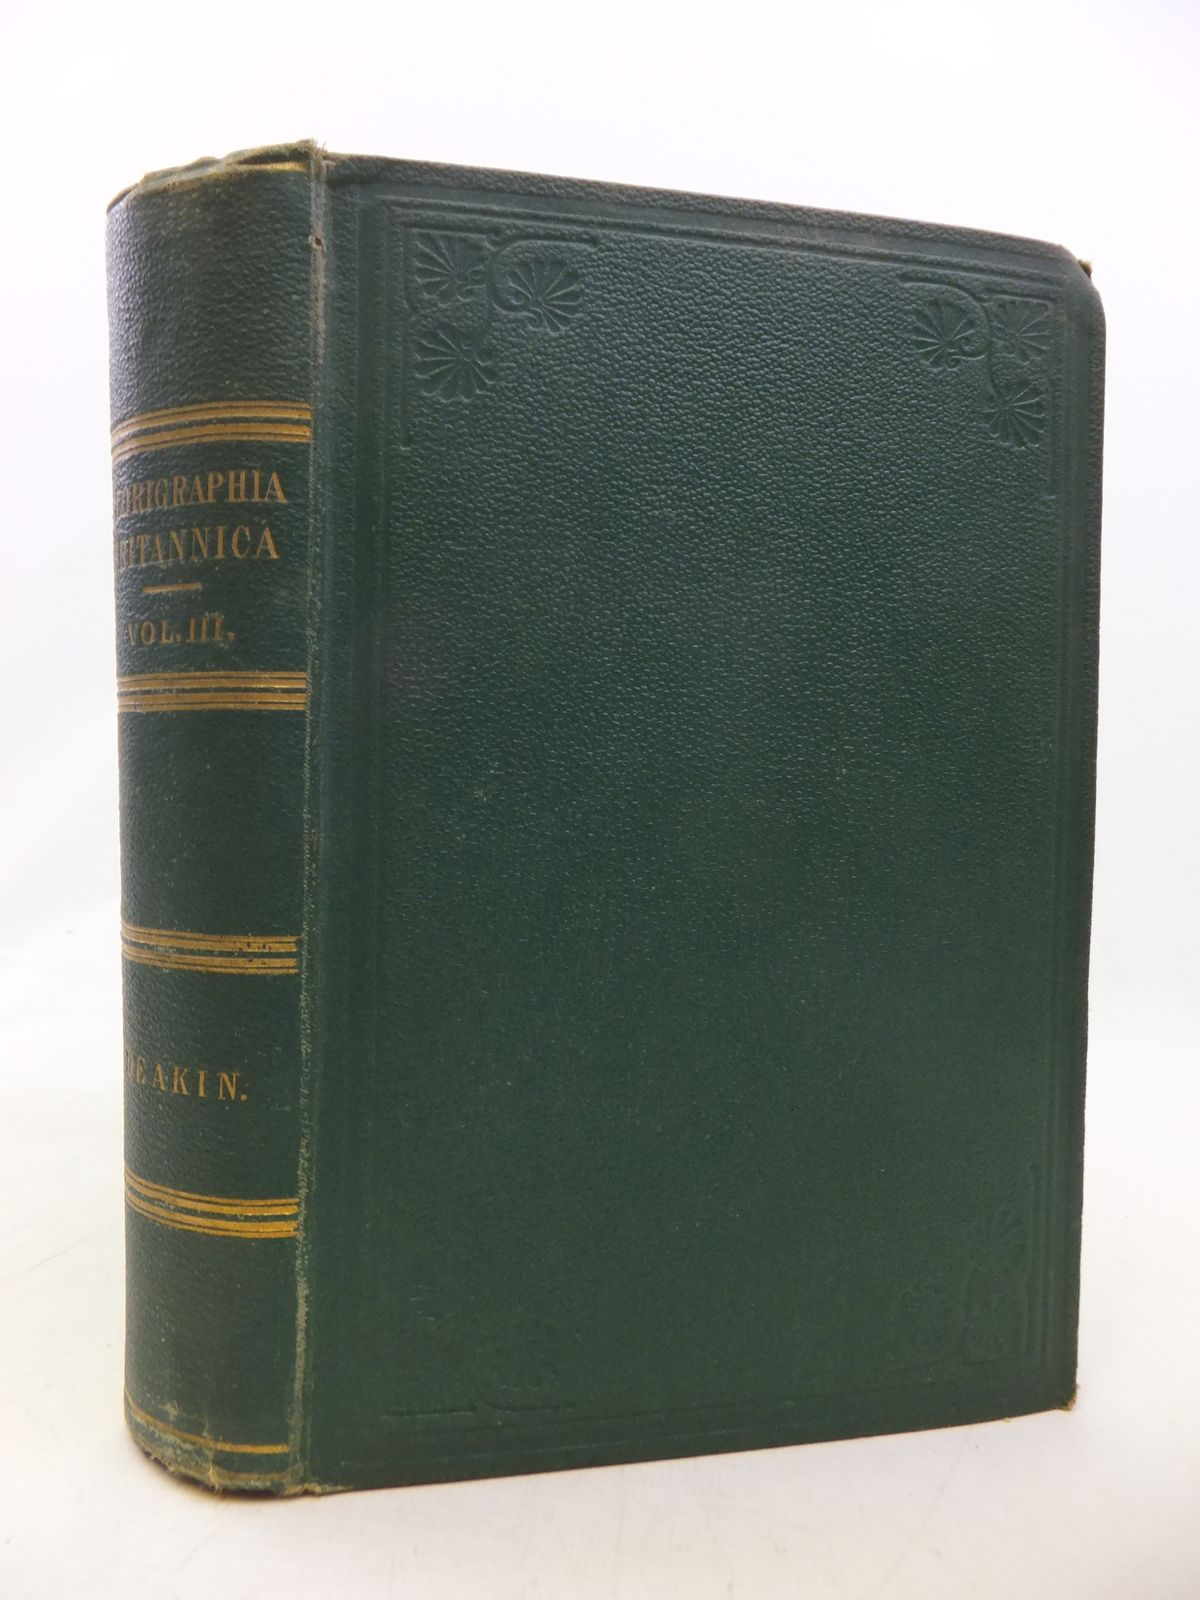 Photo of FLORIGRAPHIA BRITANNICA VOLUME III- Stock Number: 1809130